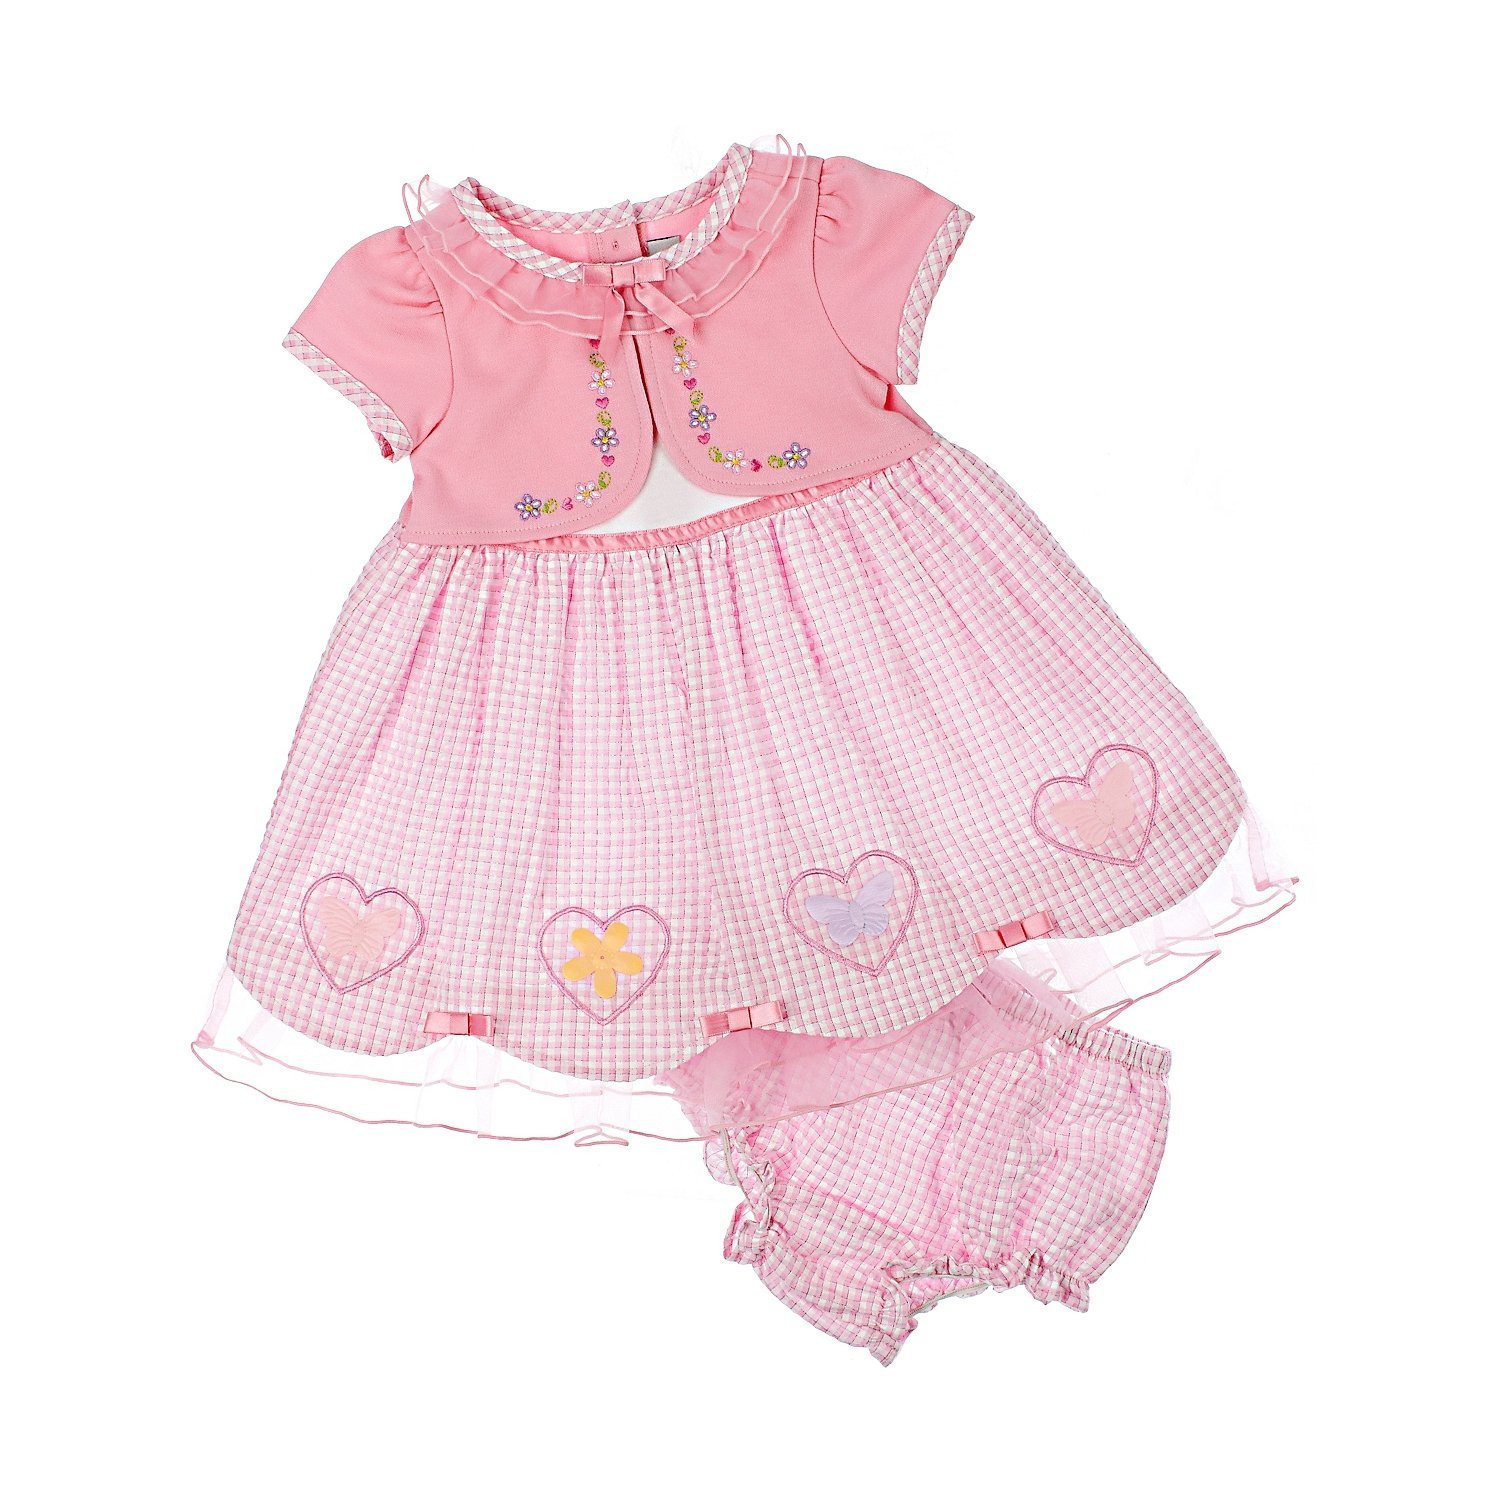 Baby Girl Dresses Best Of Beautiful Baby Girl Dress by Youngland On Lovekidszone Of Great 42 Pics Baby Girl Dresses